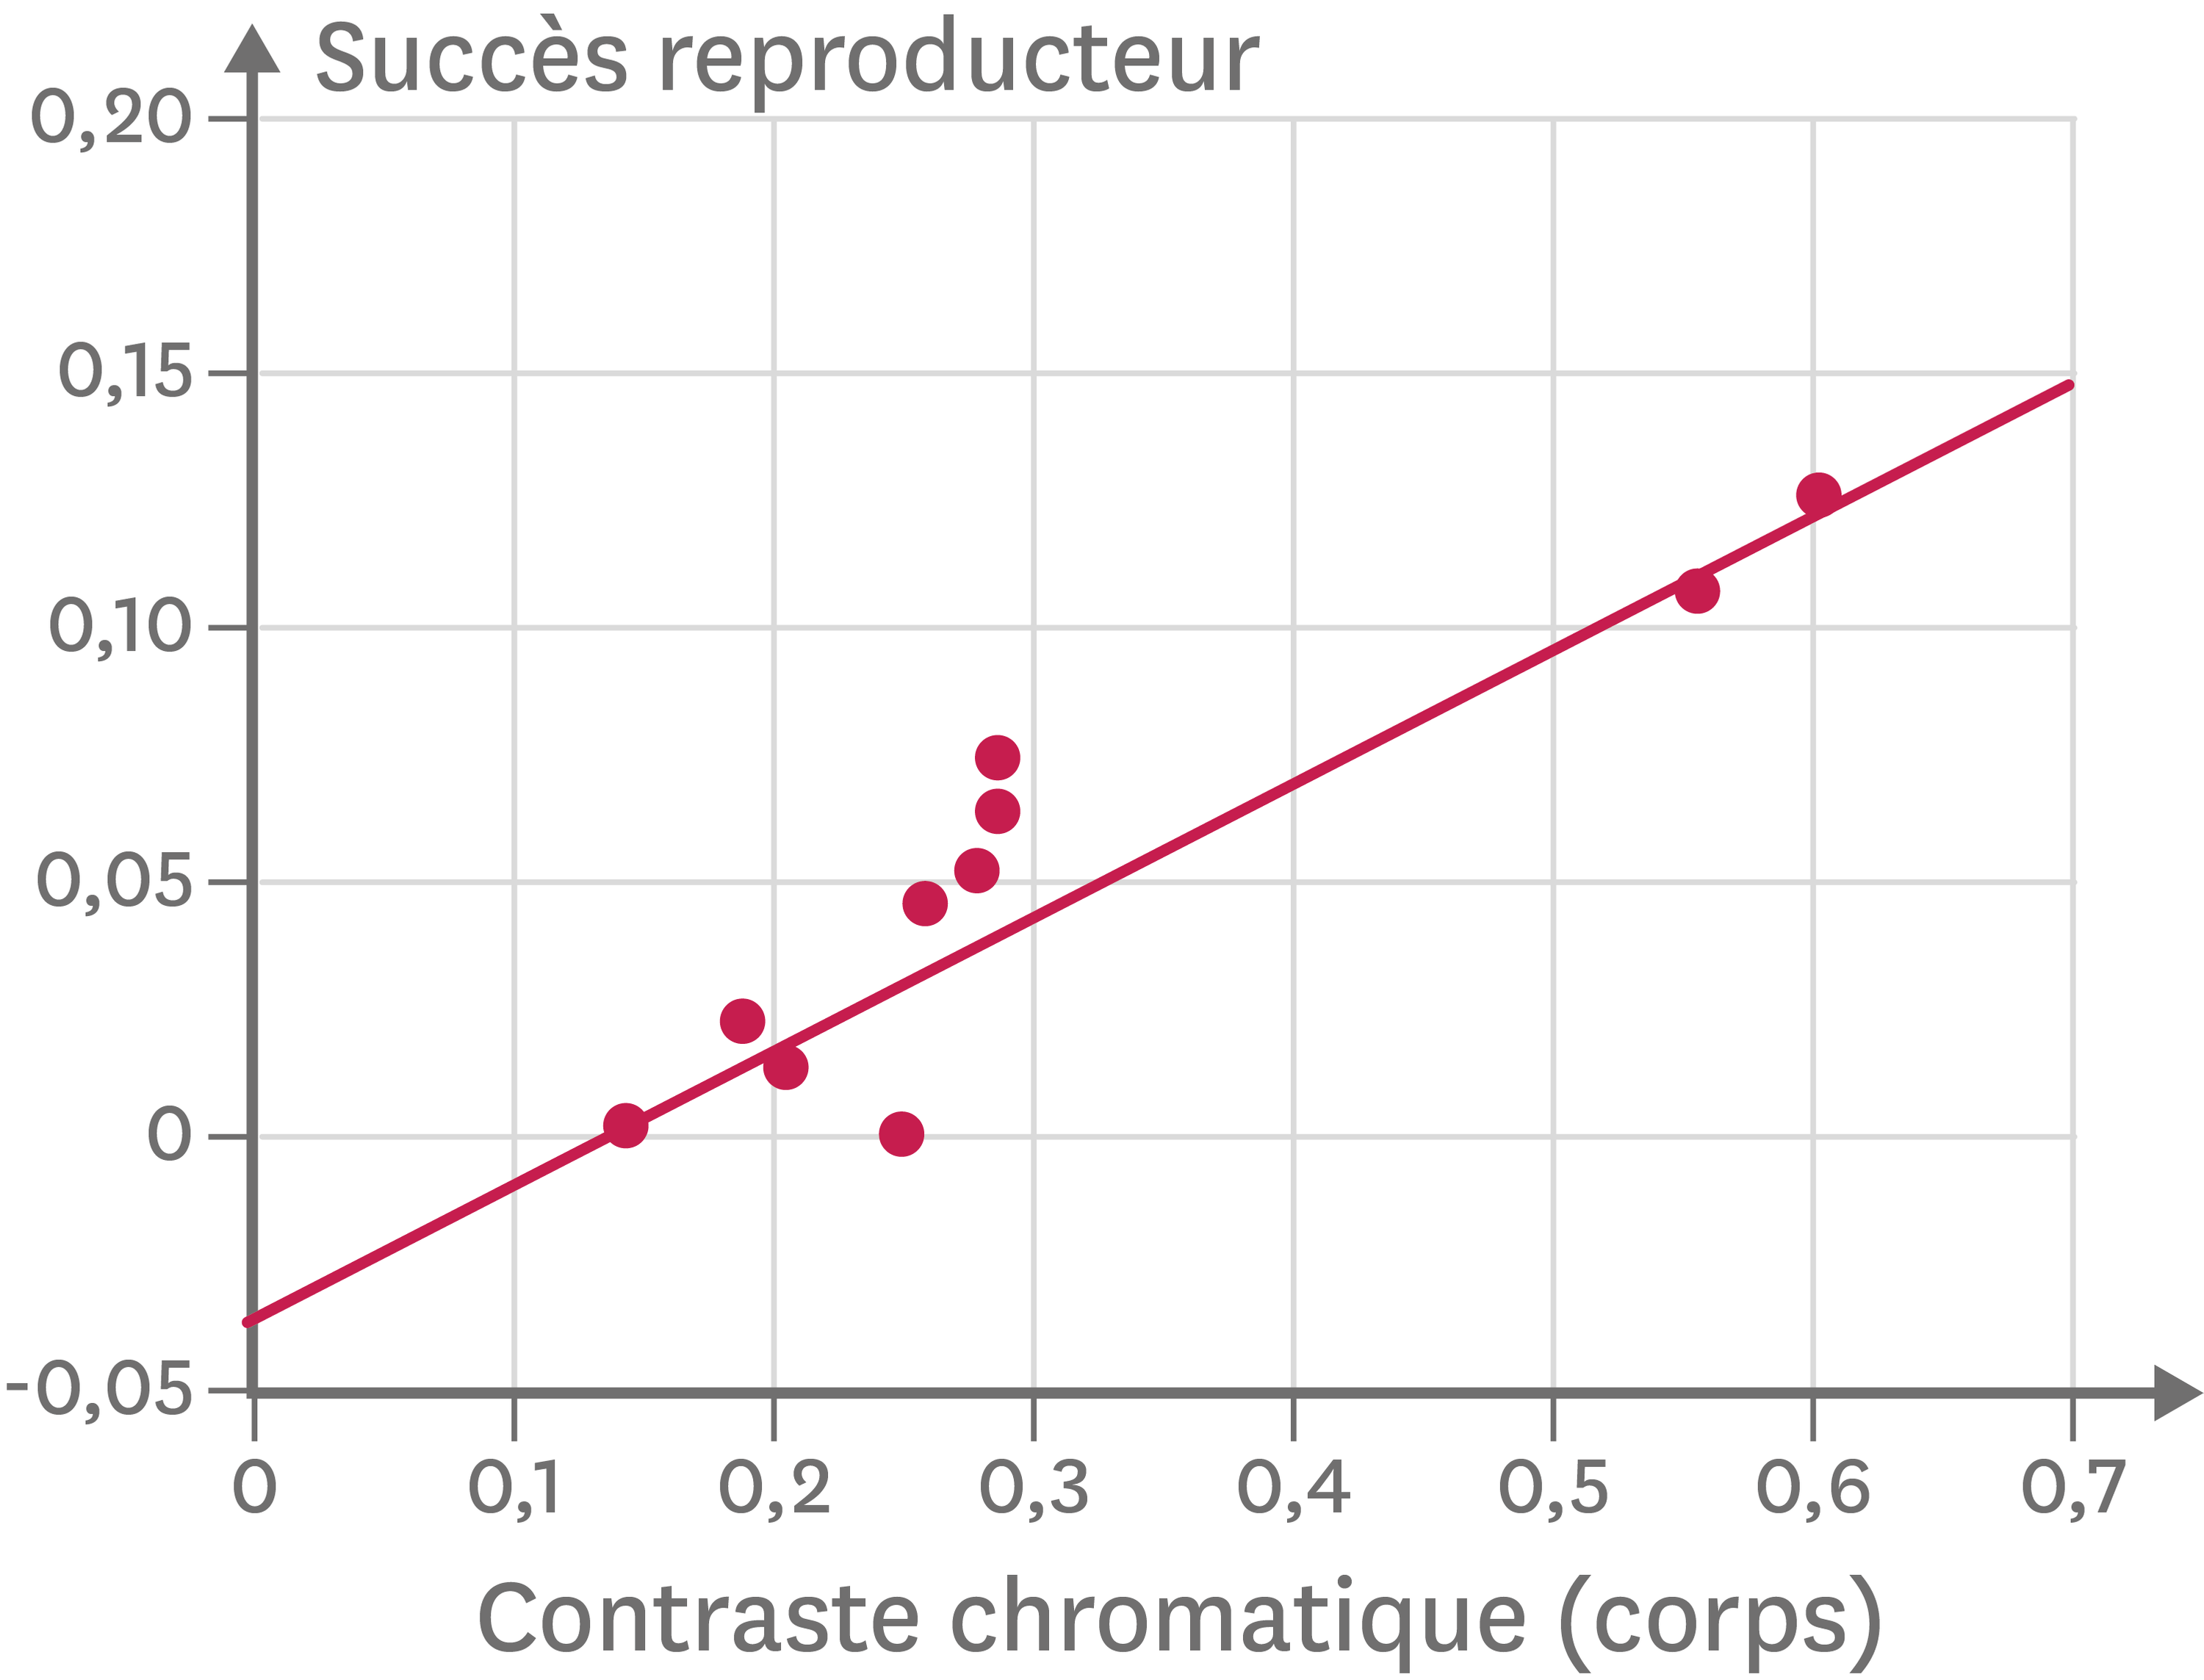 <stamp theme='svt-green1'>Doc. 1</stamp> La relation entre la capacité à se reproduire et la visibilité des guppies mâles dans un environnement sans prédateur.